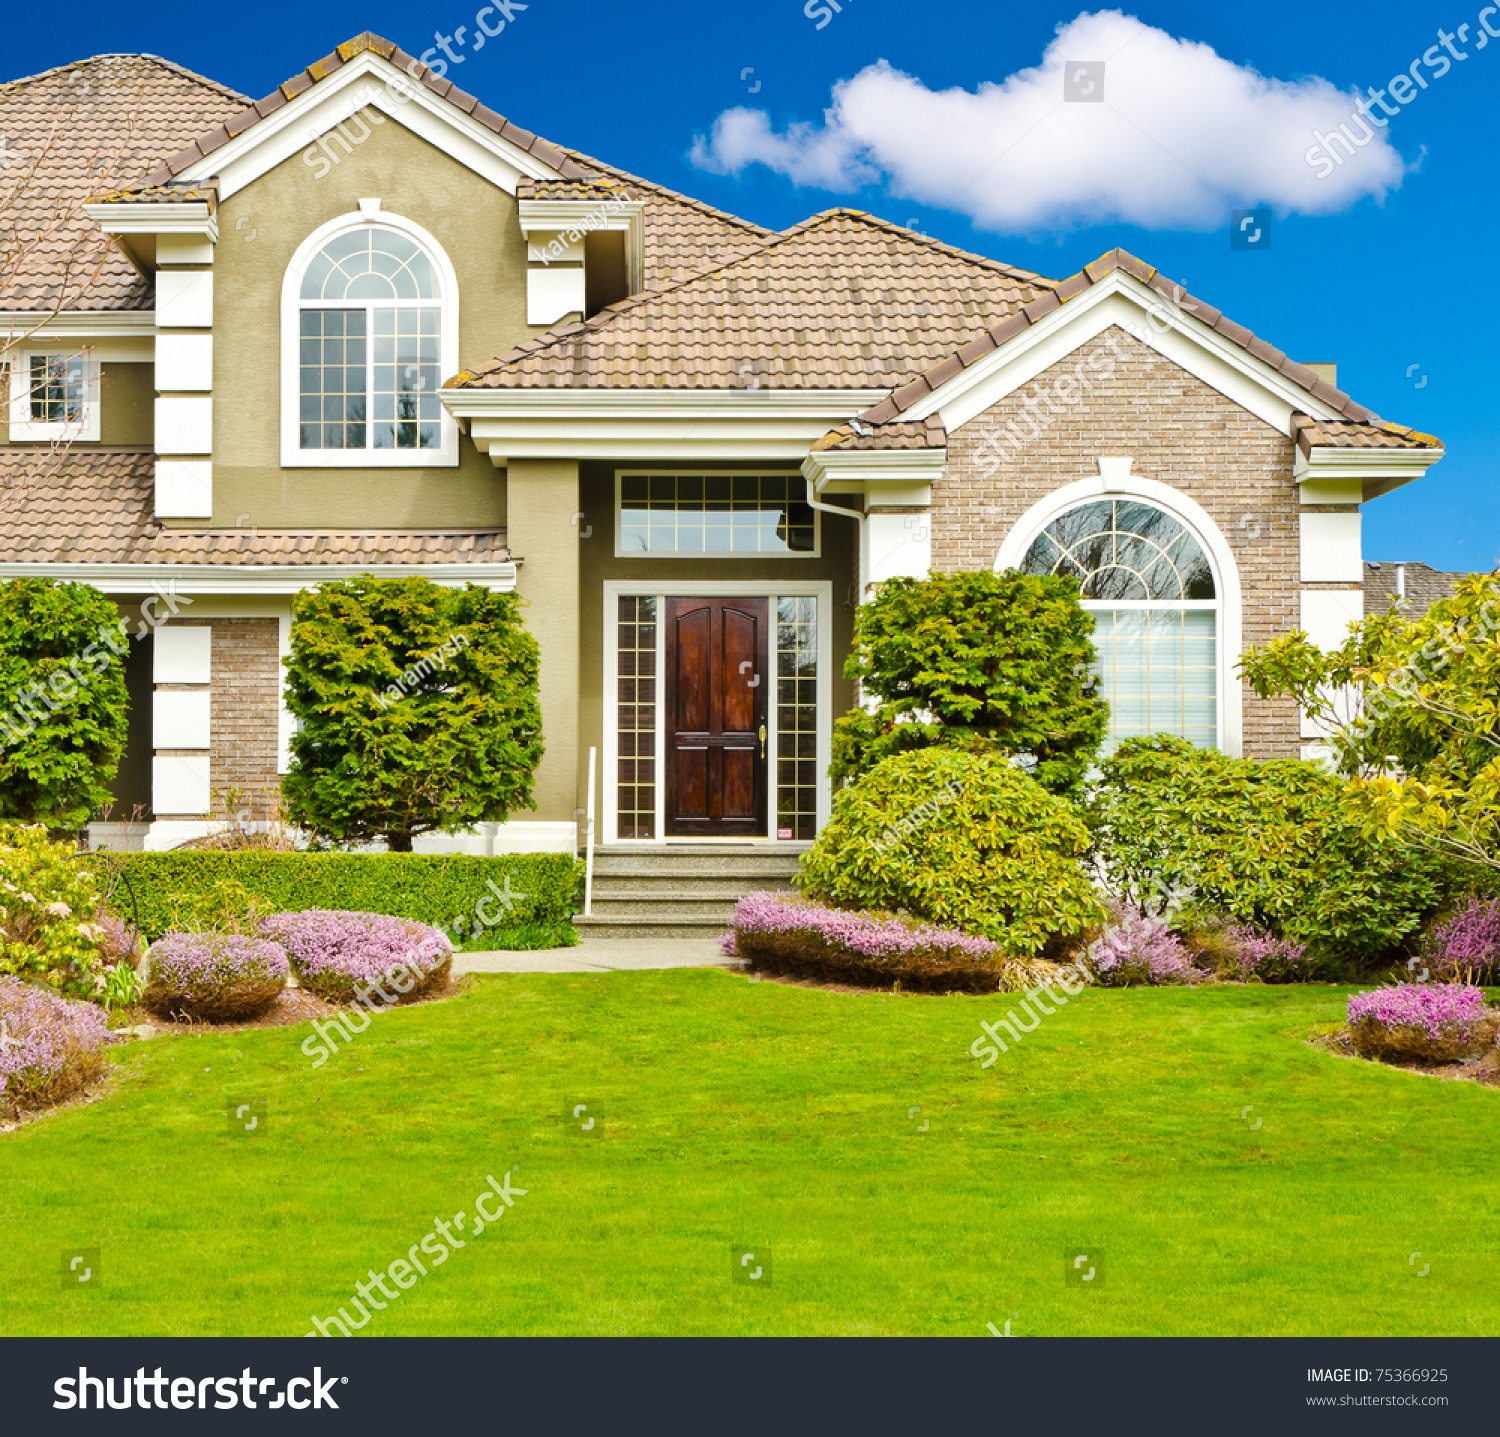 Fragment nice house stock photo 75366925 shutterstock for Nice house images